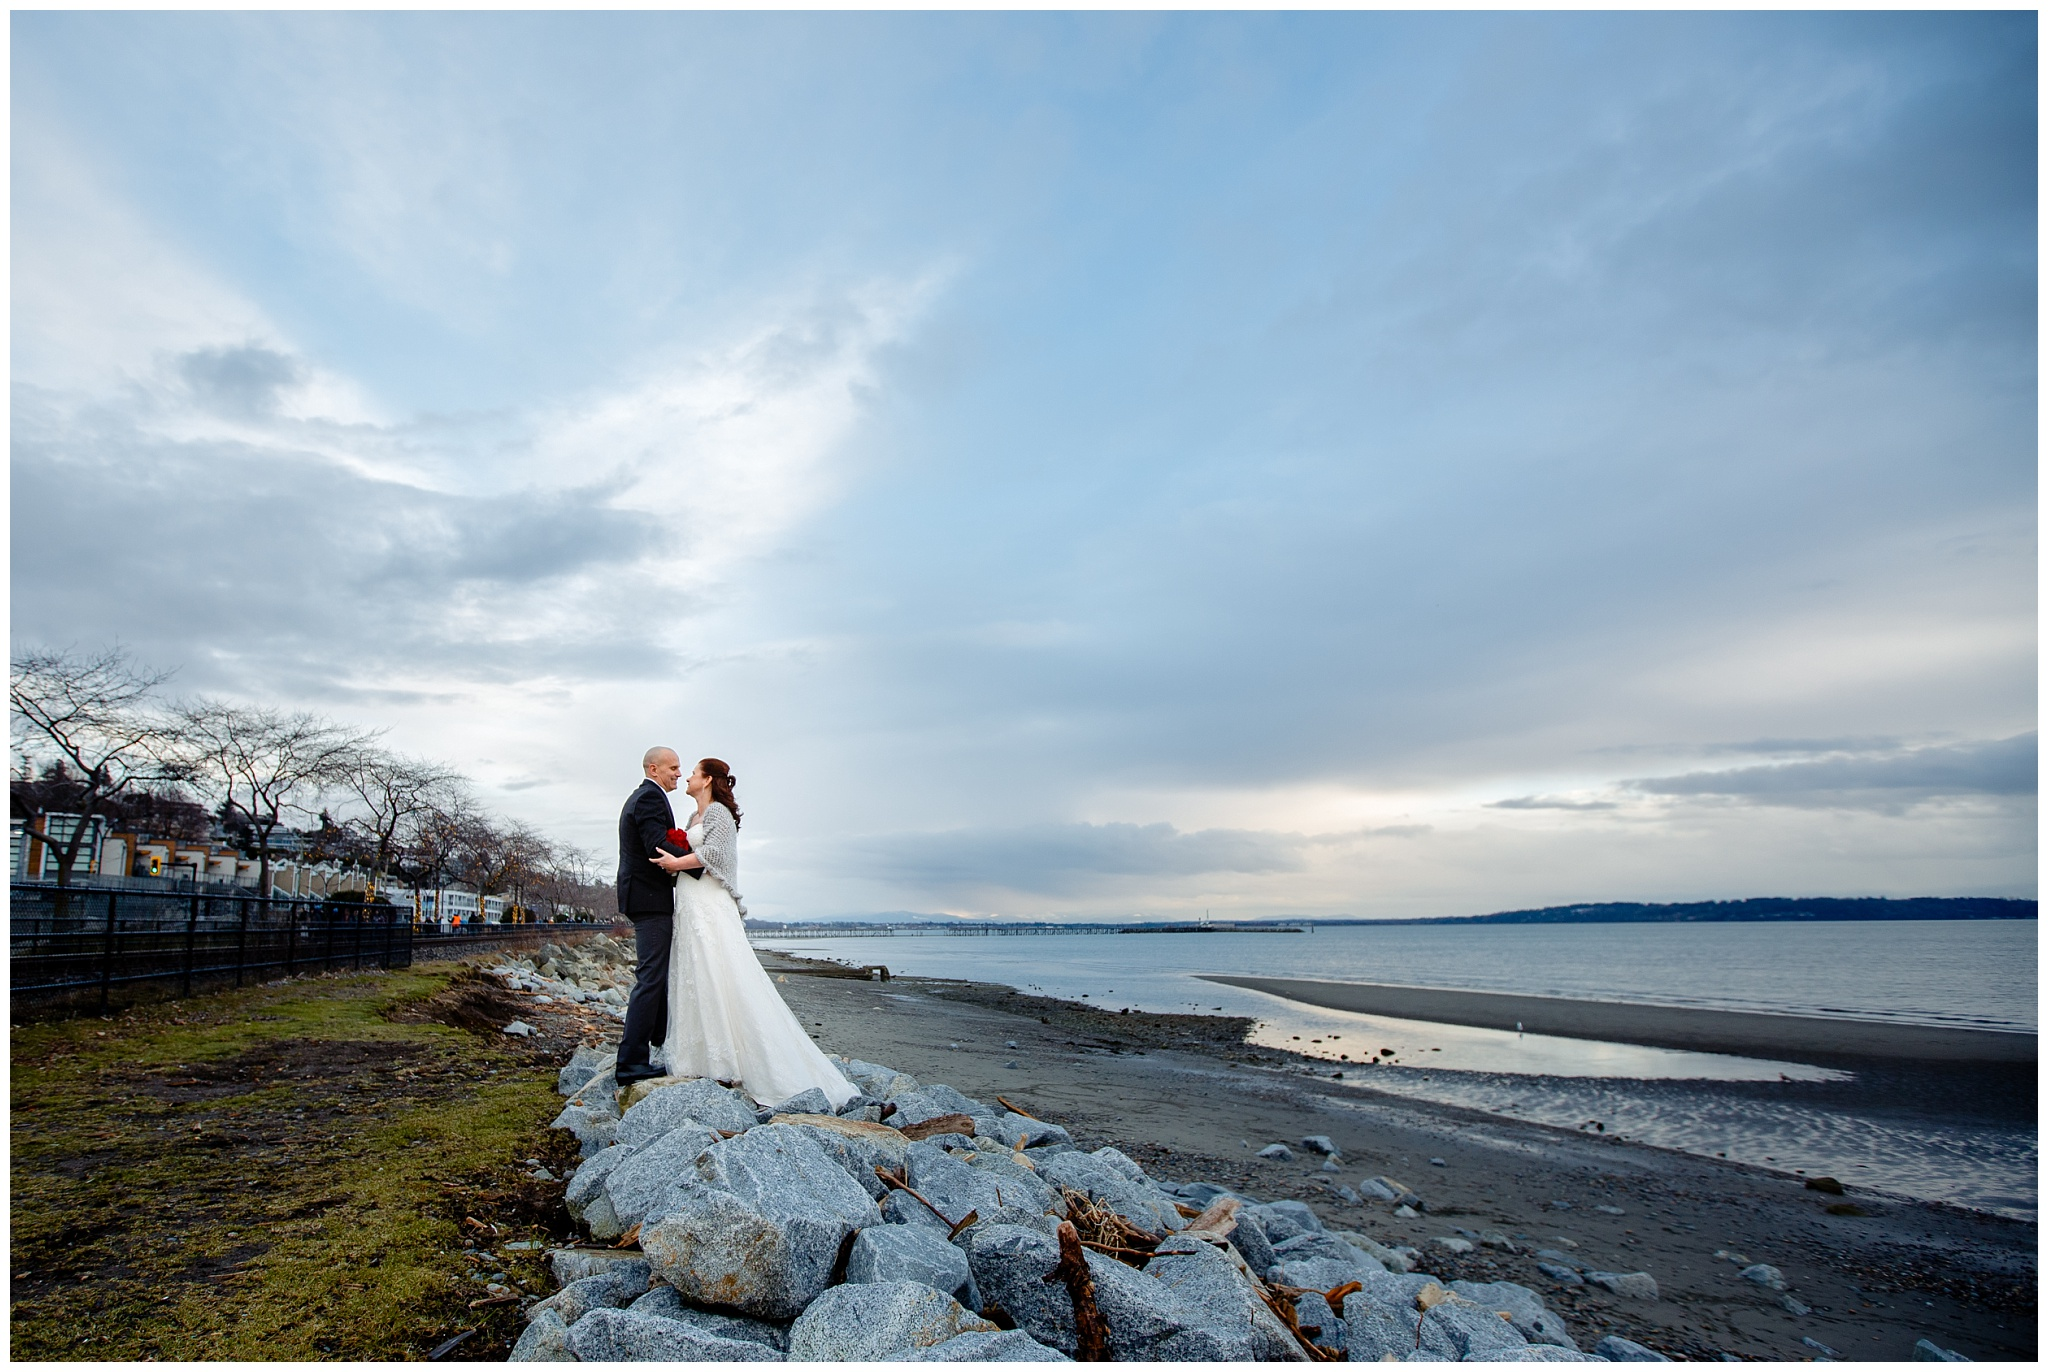 White Rock Intimate Wedding 5 Star Catering Venue Surrey BC Middle Aged Couple_0011.jpg